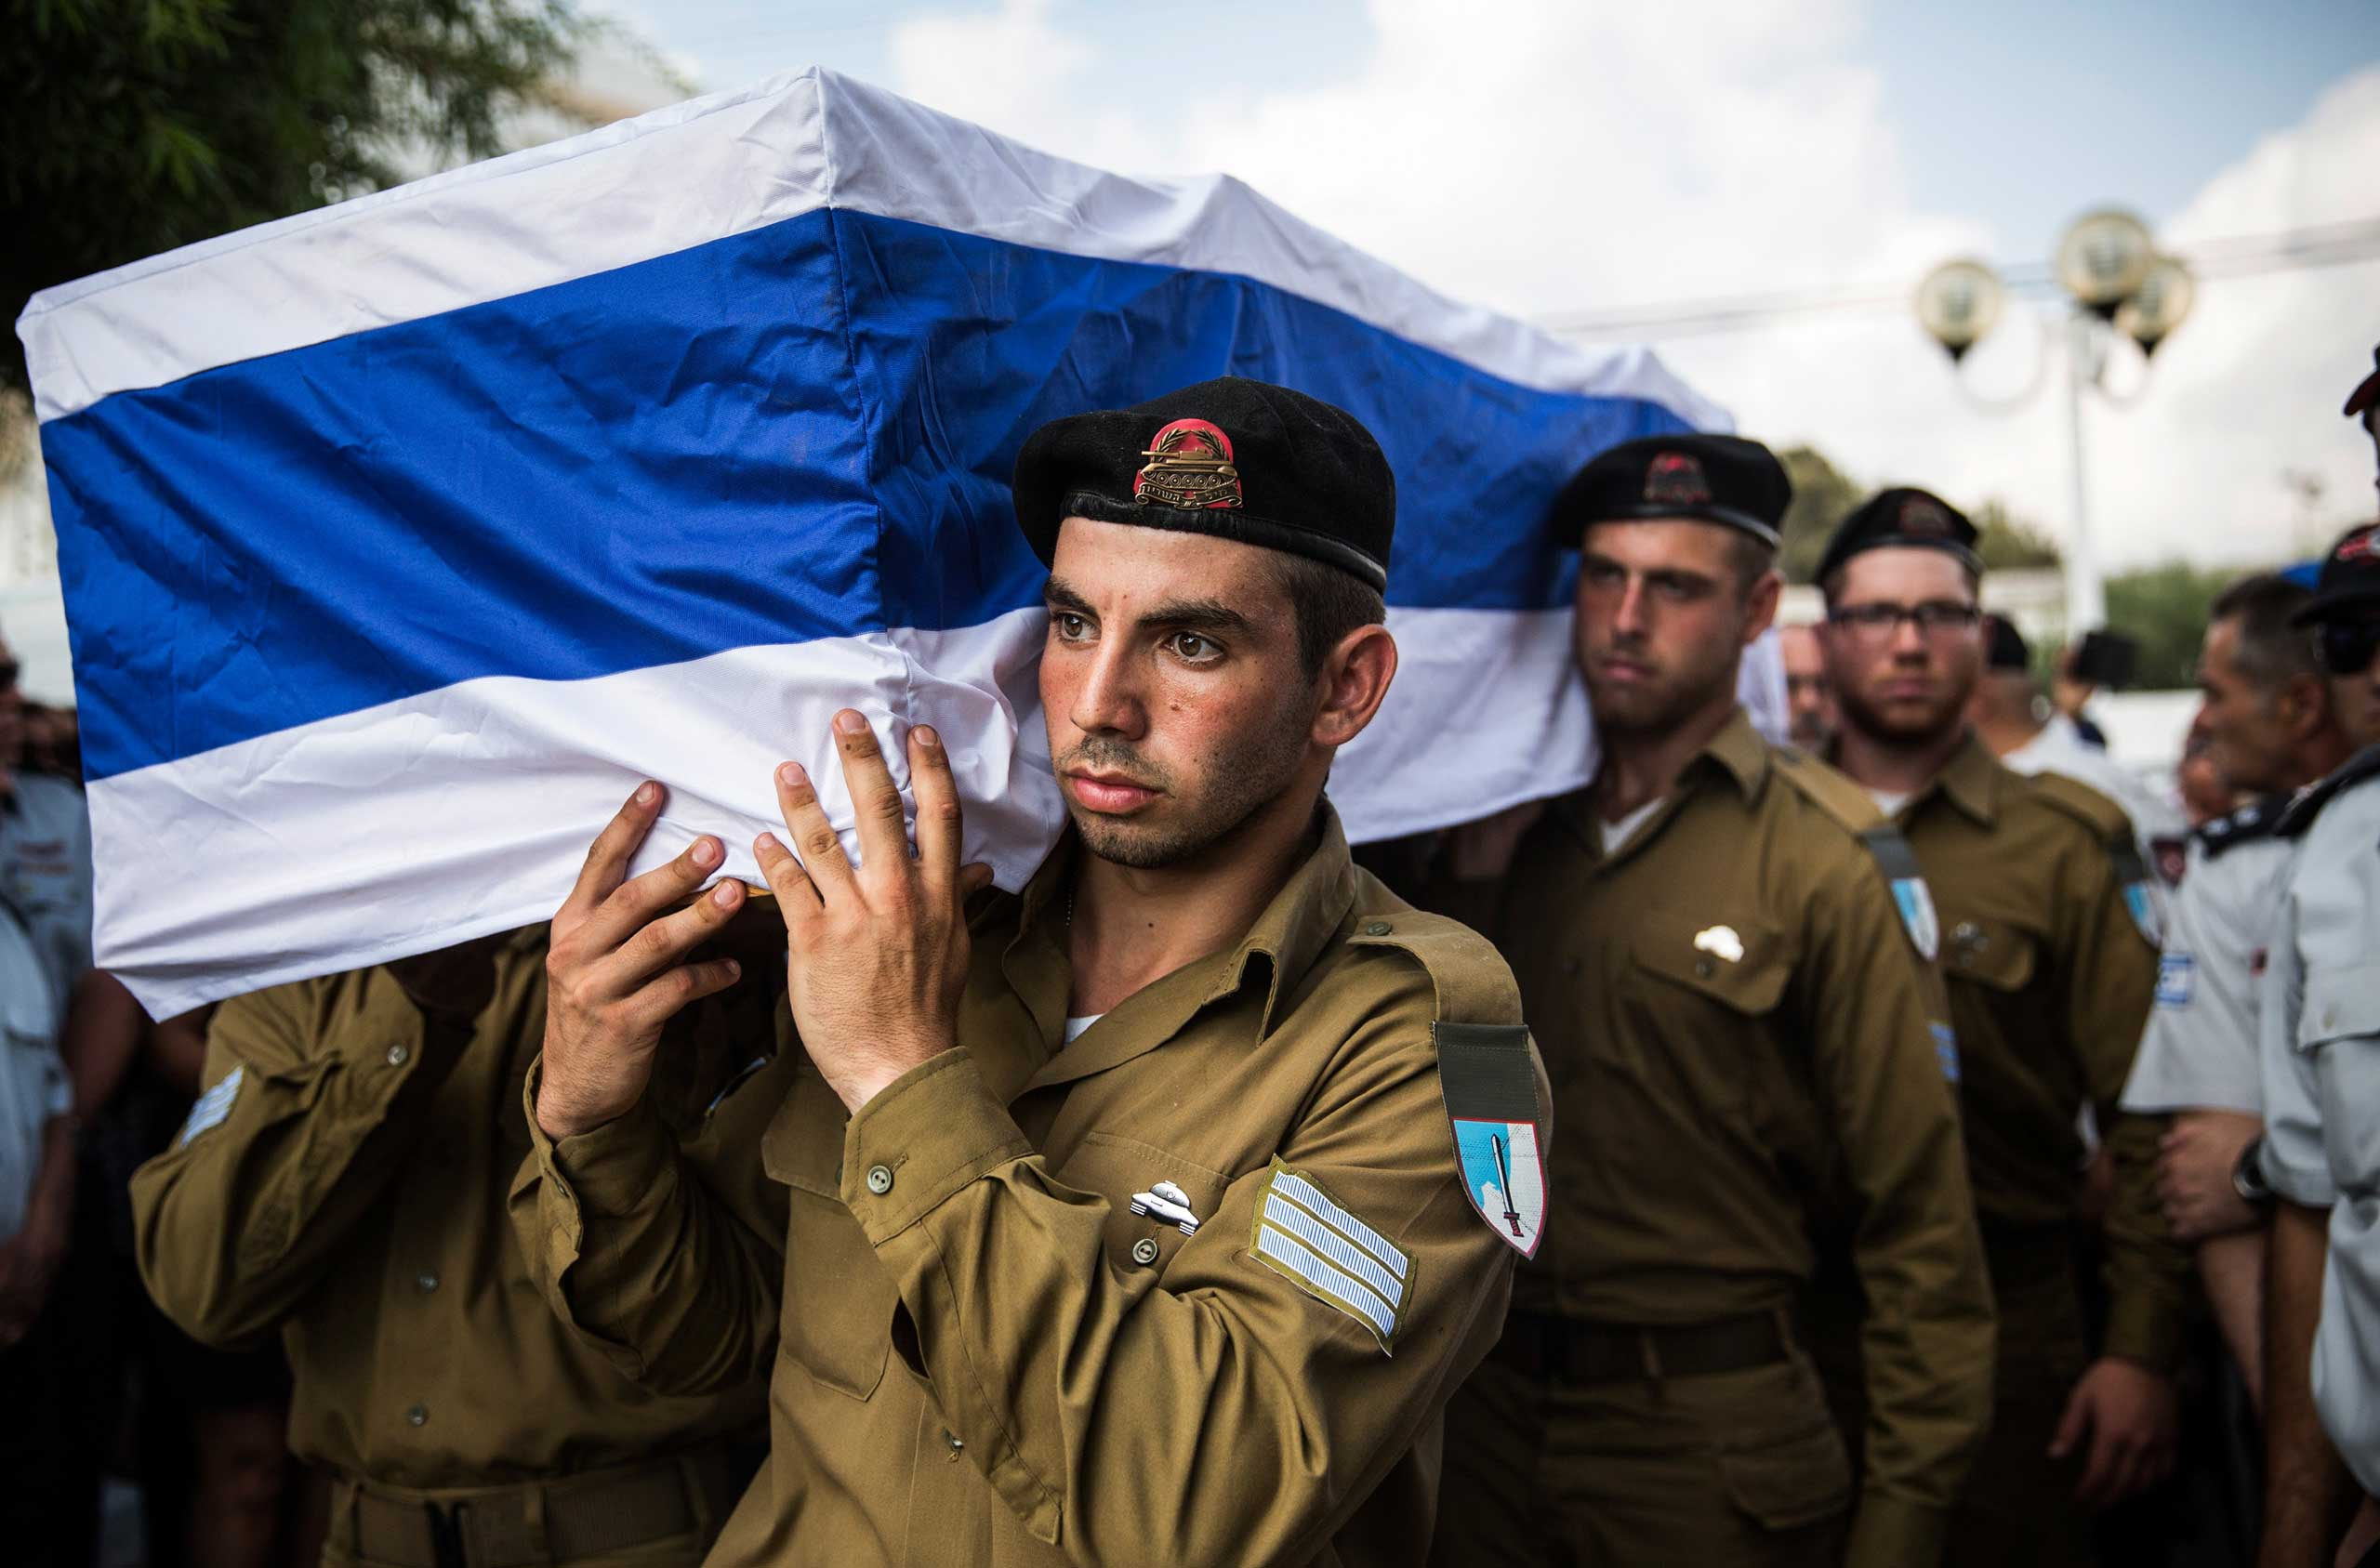 The casket carrying Israeli Sergeant Adar Barsano is carried to a burial plot in a cemetary during his funeral in Nahariya, Israel, July 20, 2014.